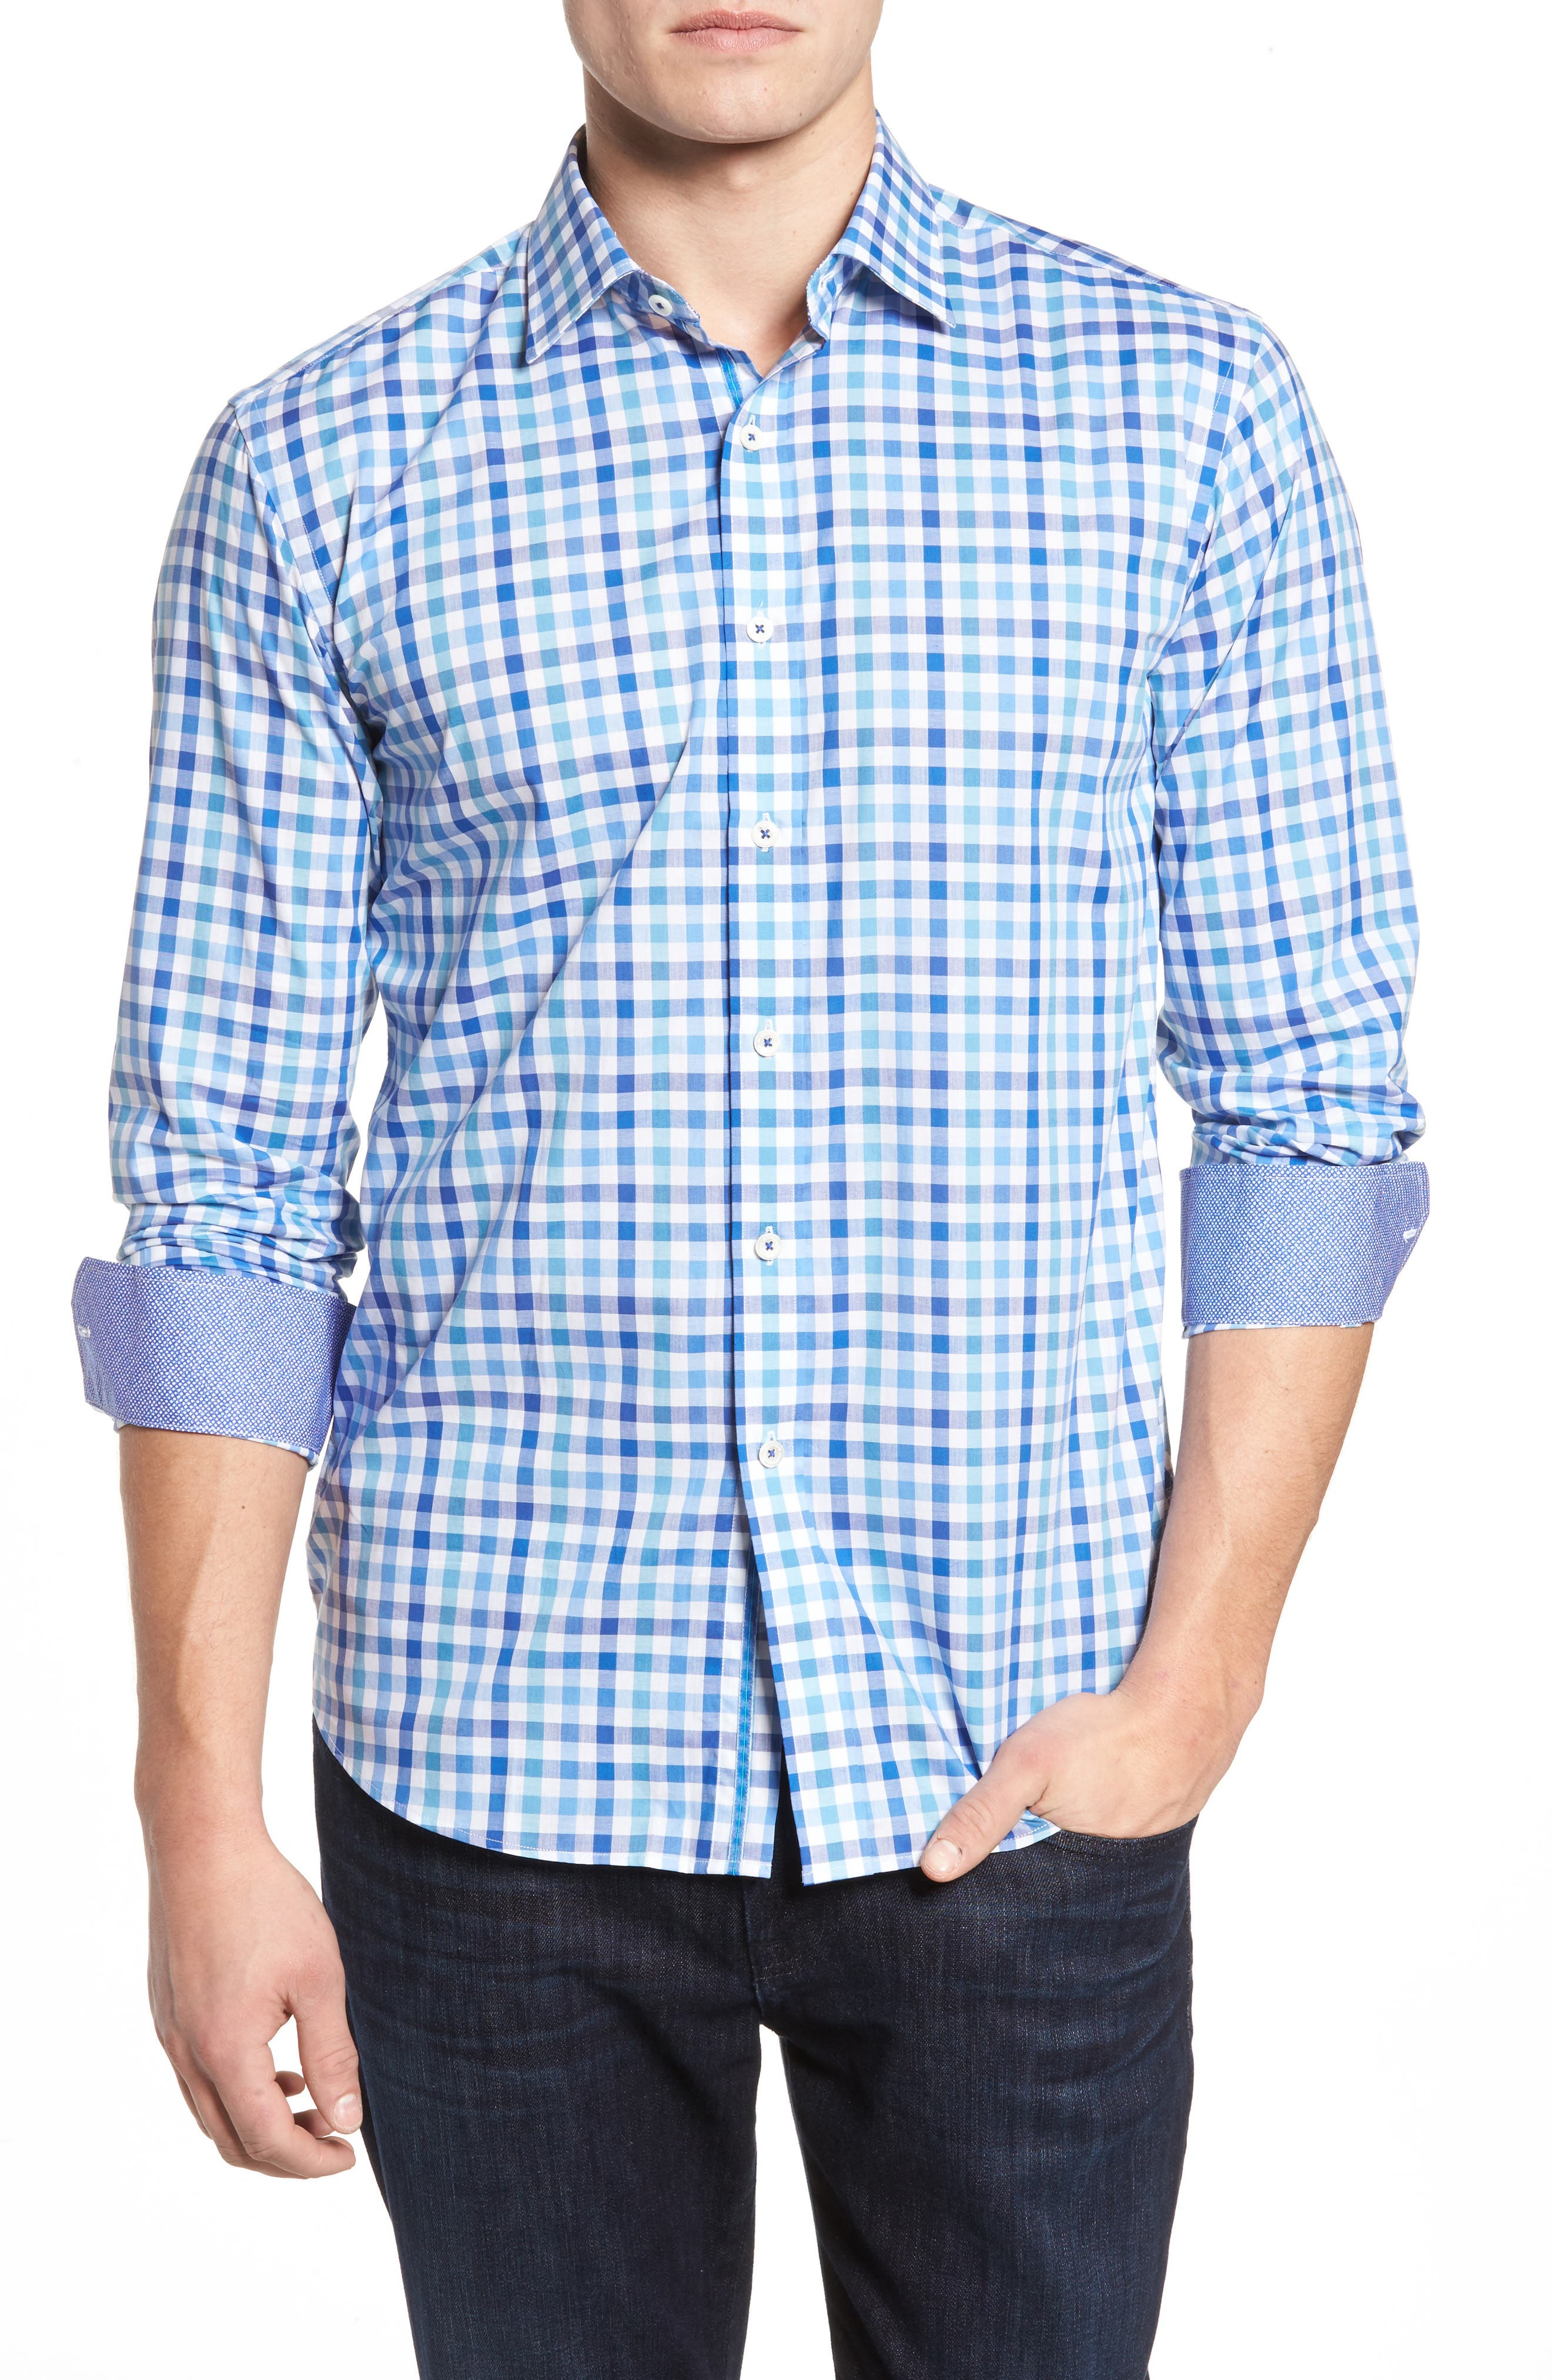 Alternate Image 1 Selected - Bugatchi Shaped Fit Plaid Sport Shirt